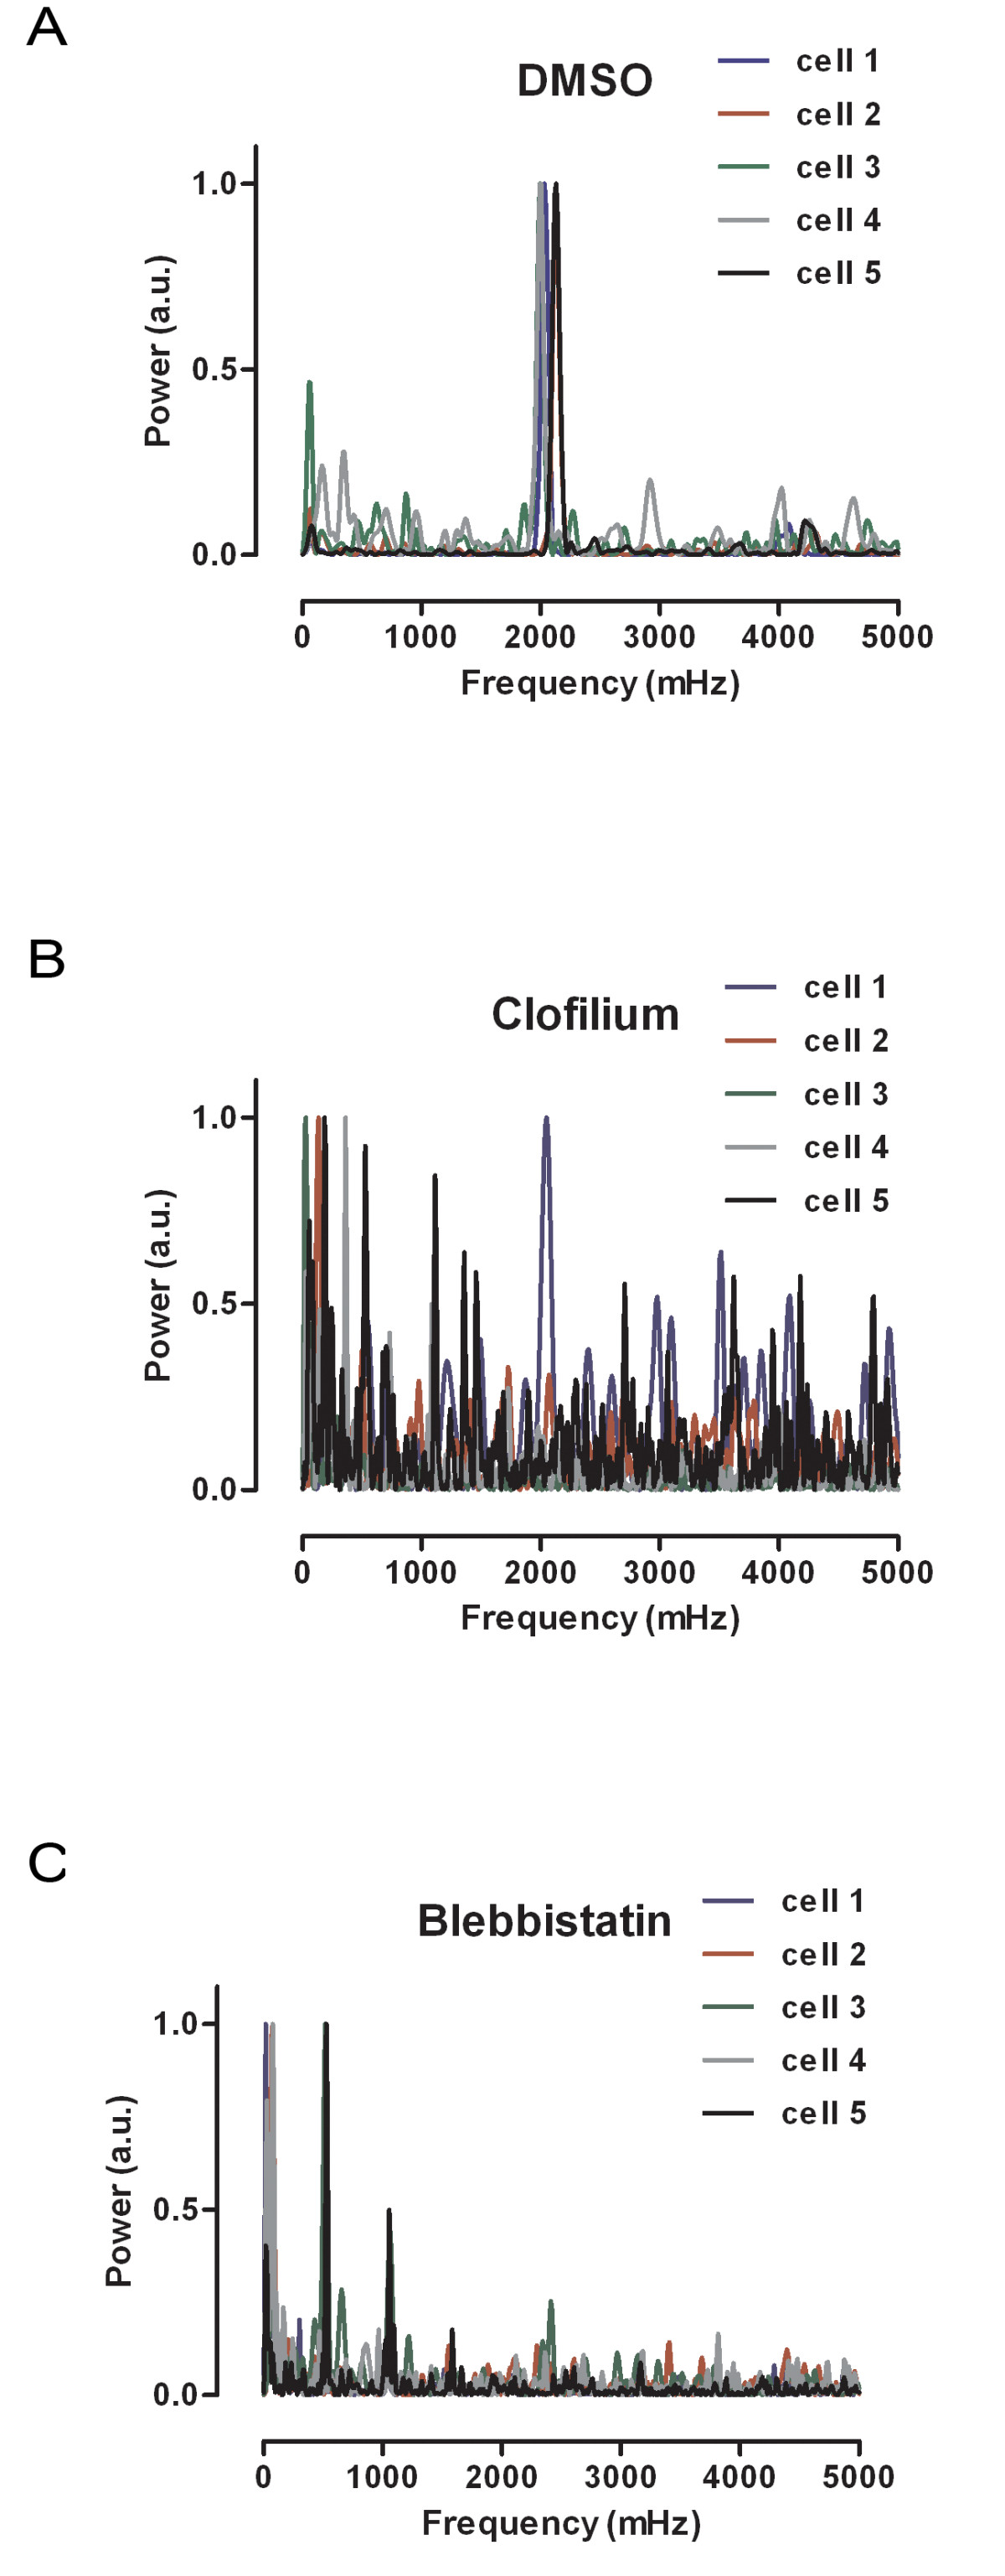 https://static-content.springer.com/image/art%3A10.1186%2F1472-6793-12-3/MediaObjects/12899_2011_Article_188_Fig3_HTML.jpg